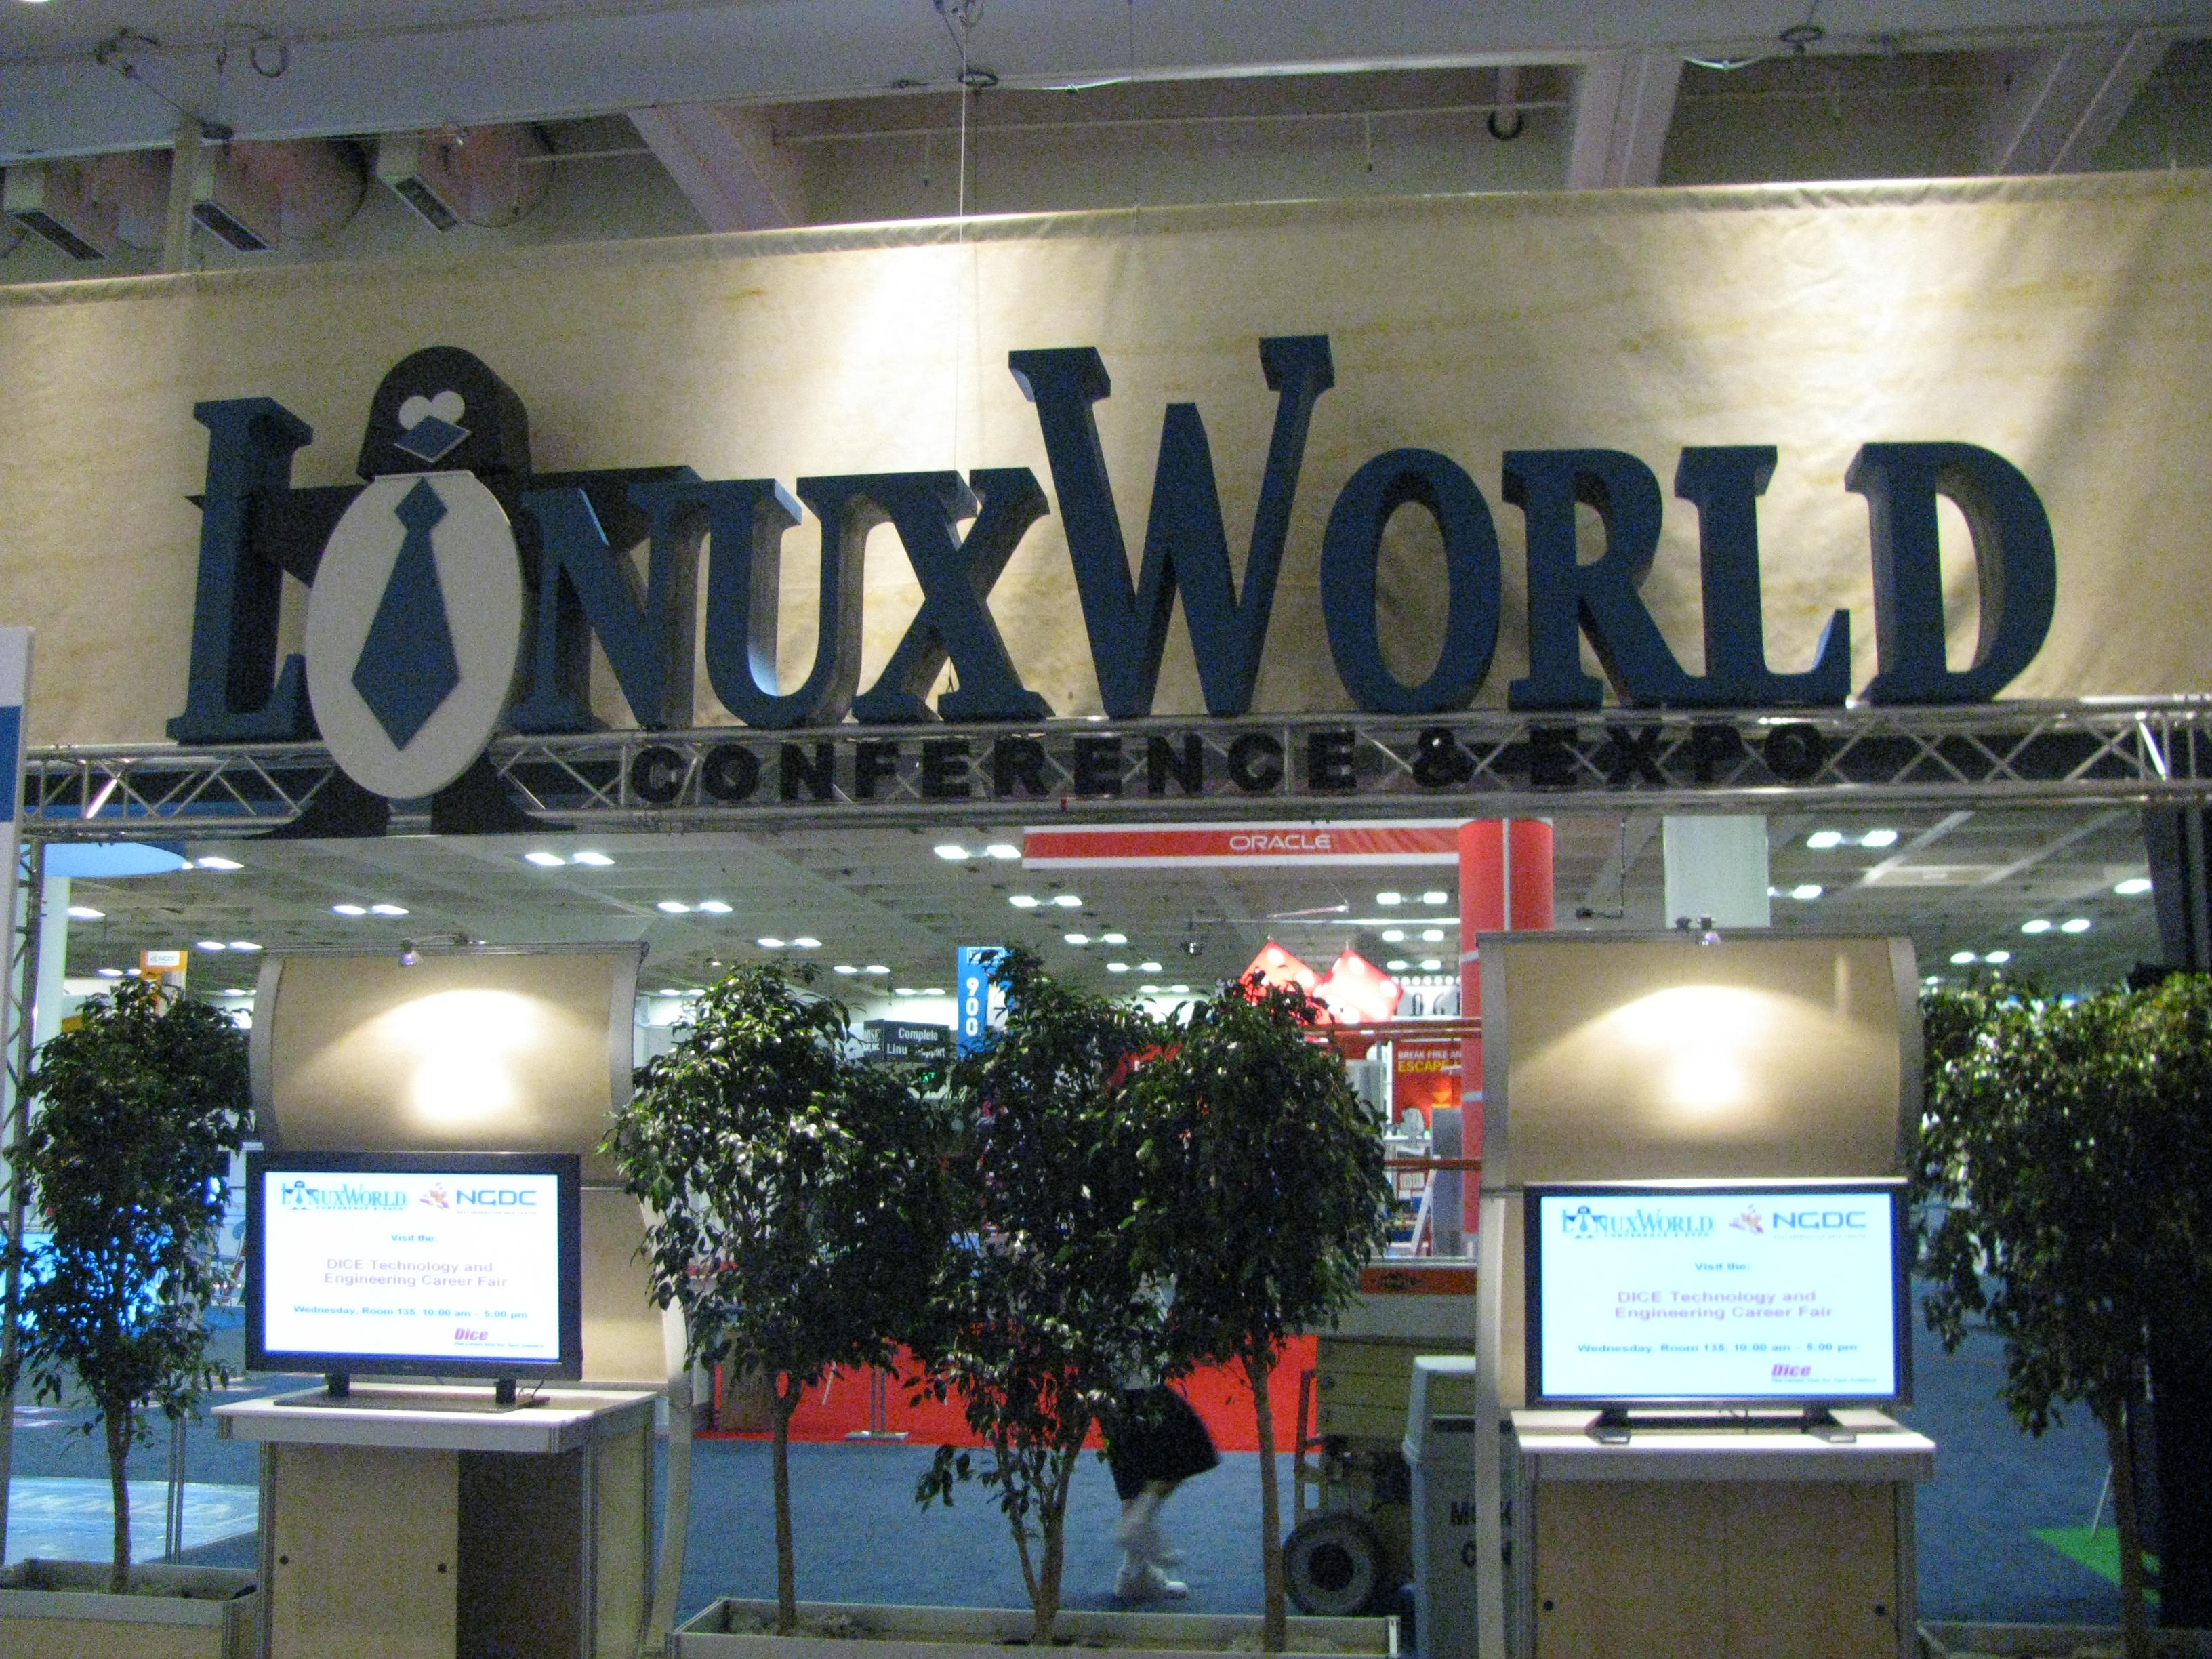 Linux World